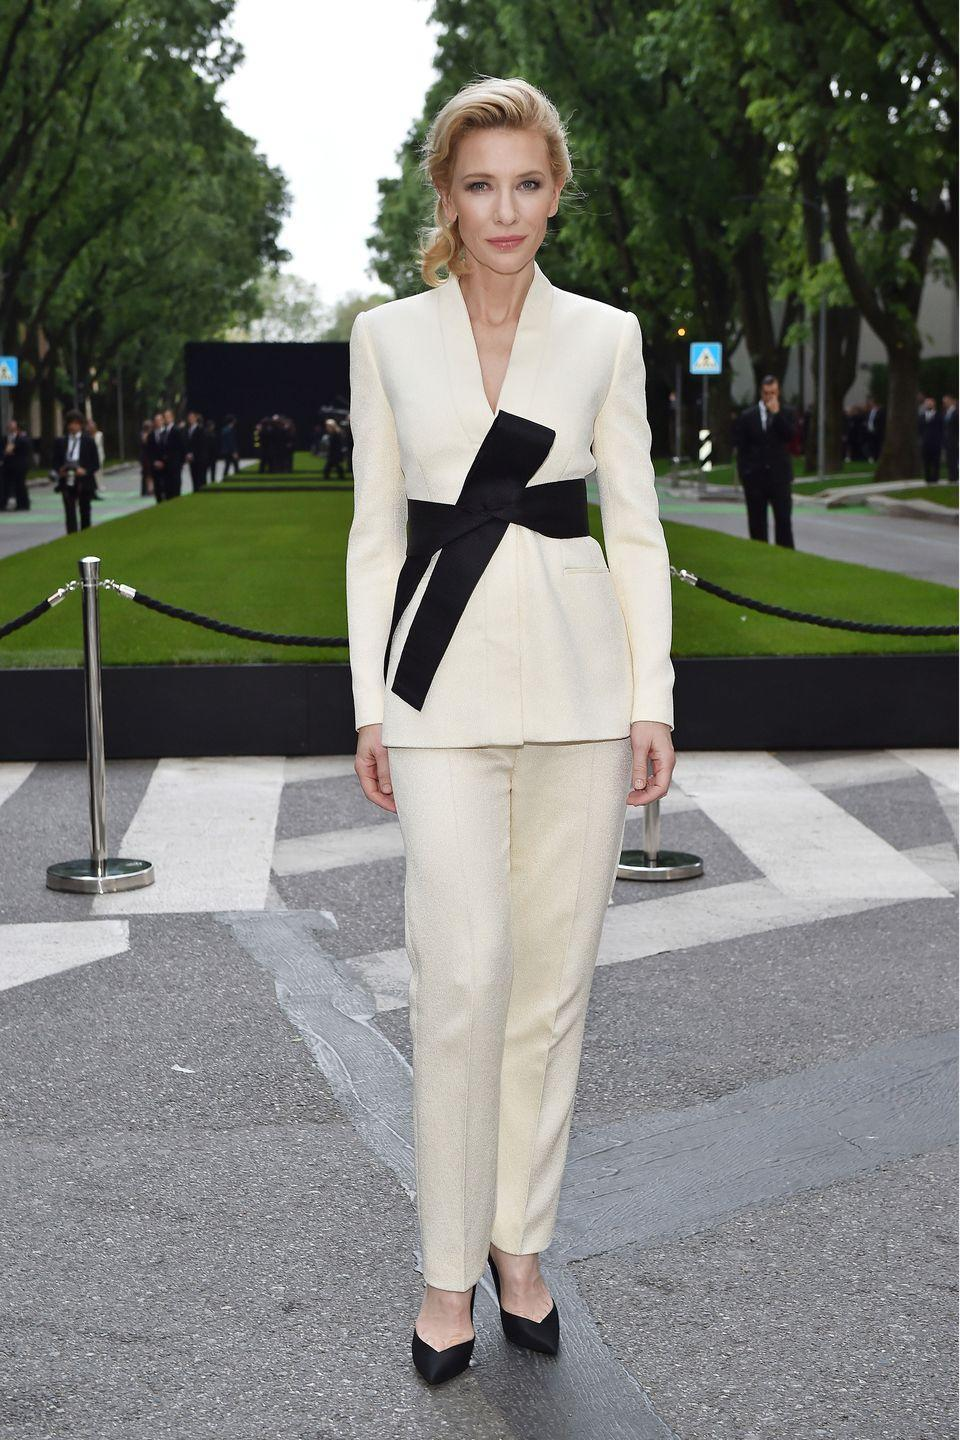 <p>Both Mulan and Cate Blanchett prove that belted jackets and pants can be just as ladylike as ball gowns.</p>